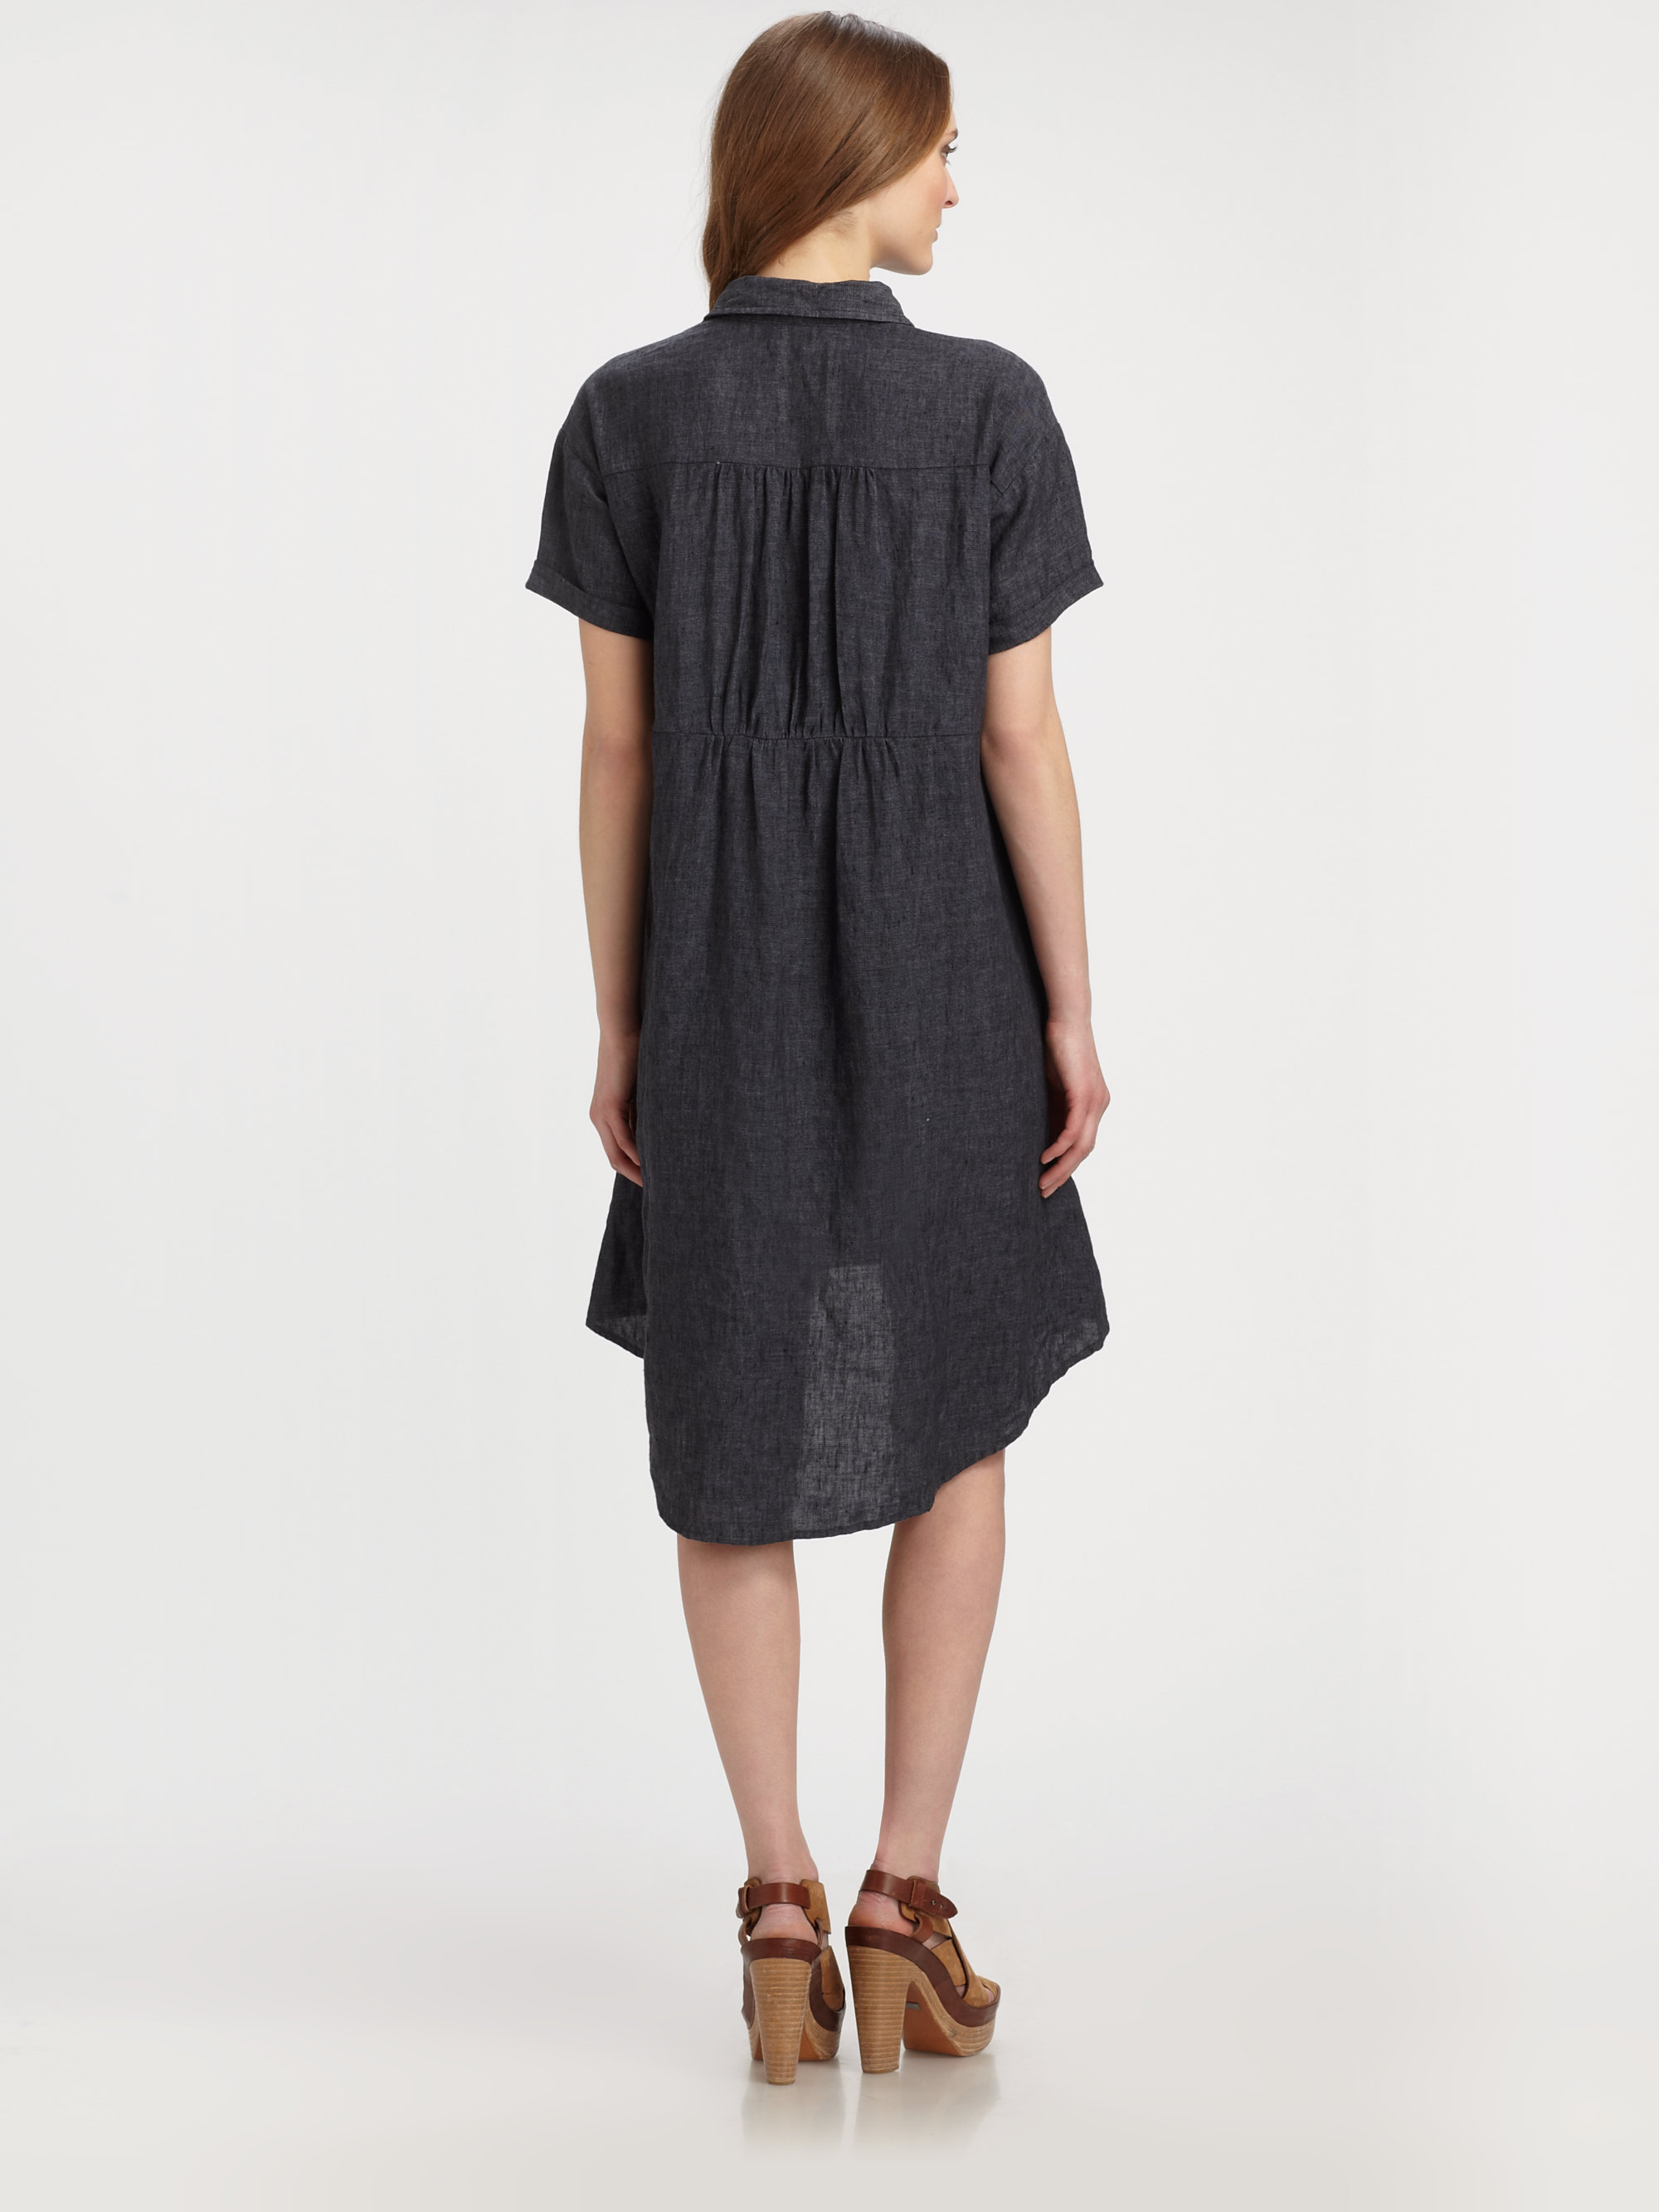 045c430bcc Eileen Fisher Linen Hilo Shirtdress in Black - Lyst